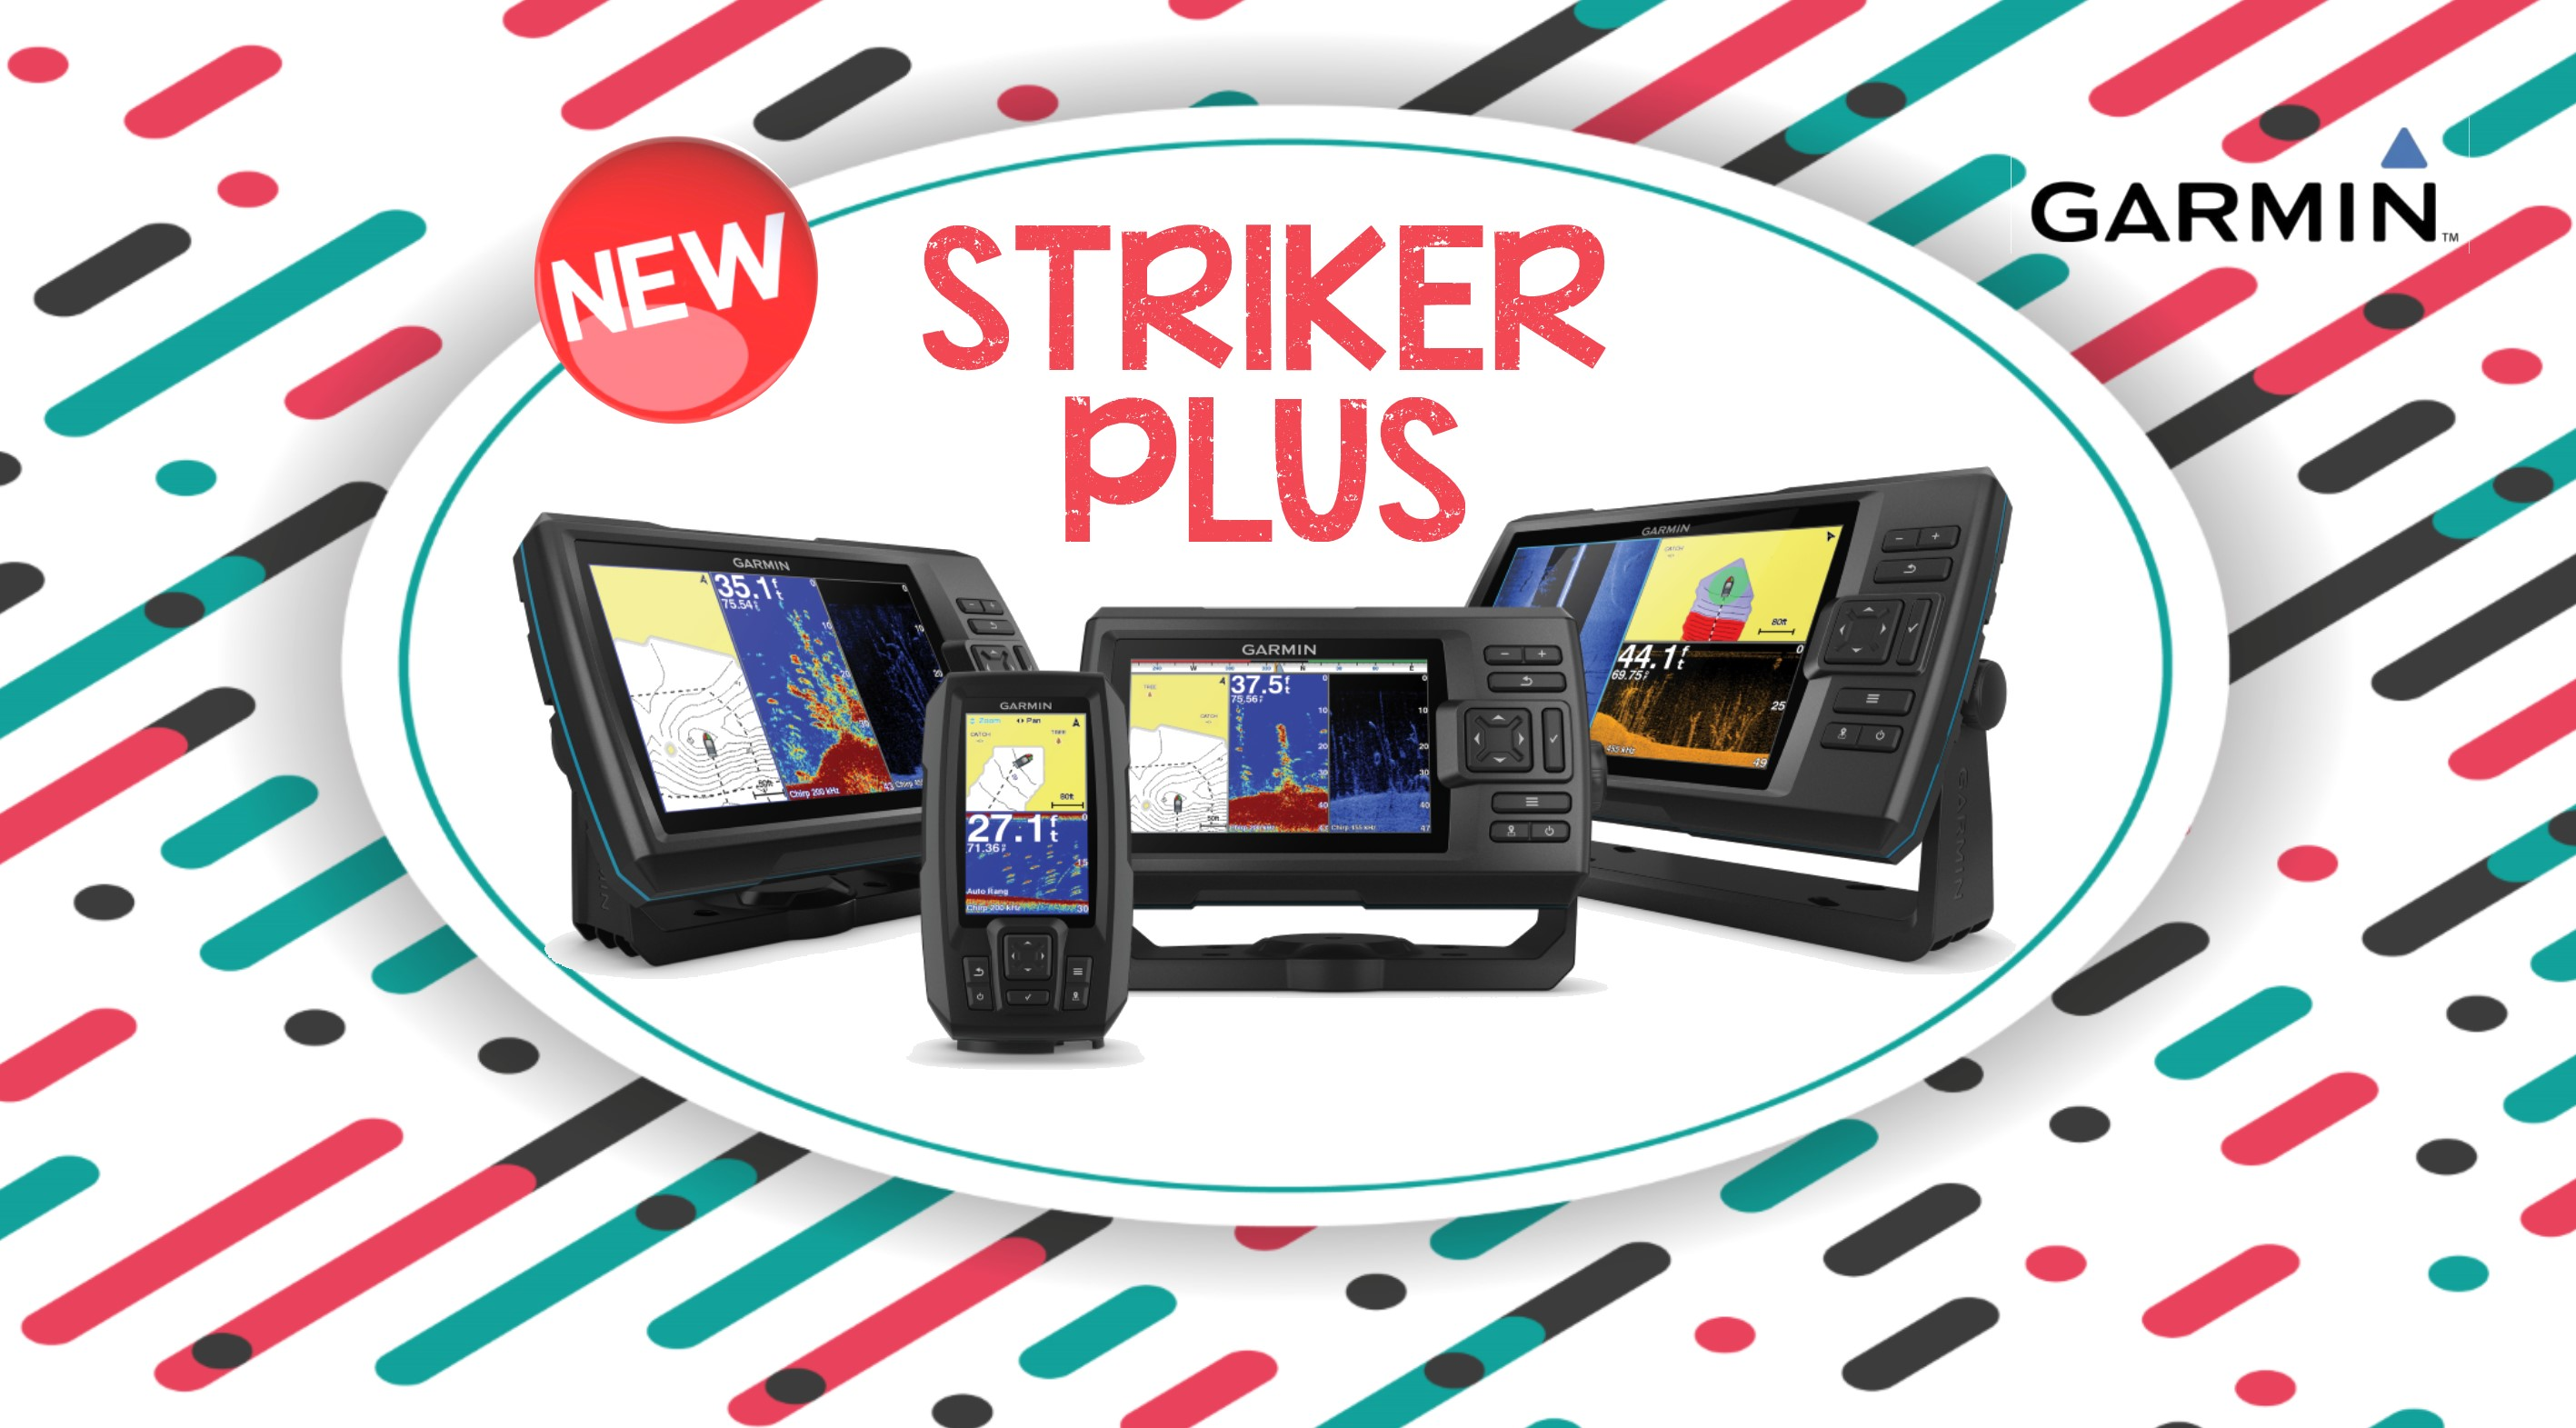 striker plus garmin